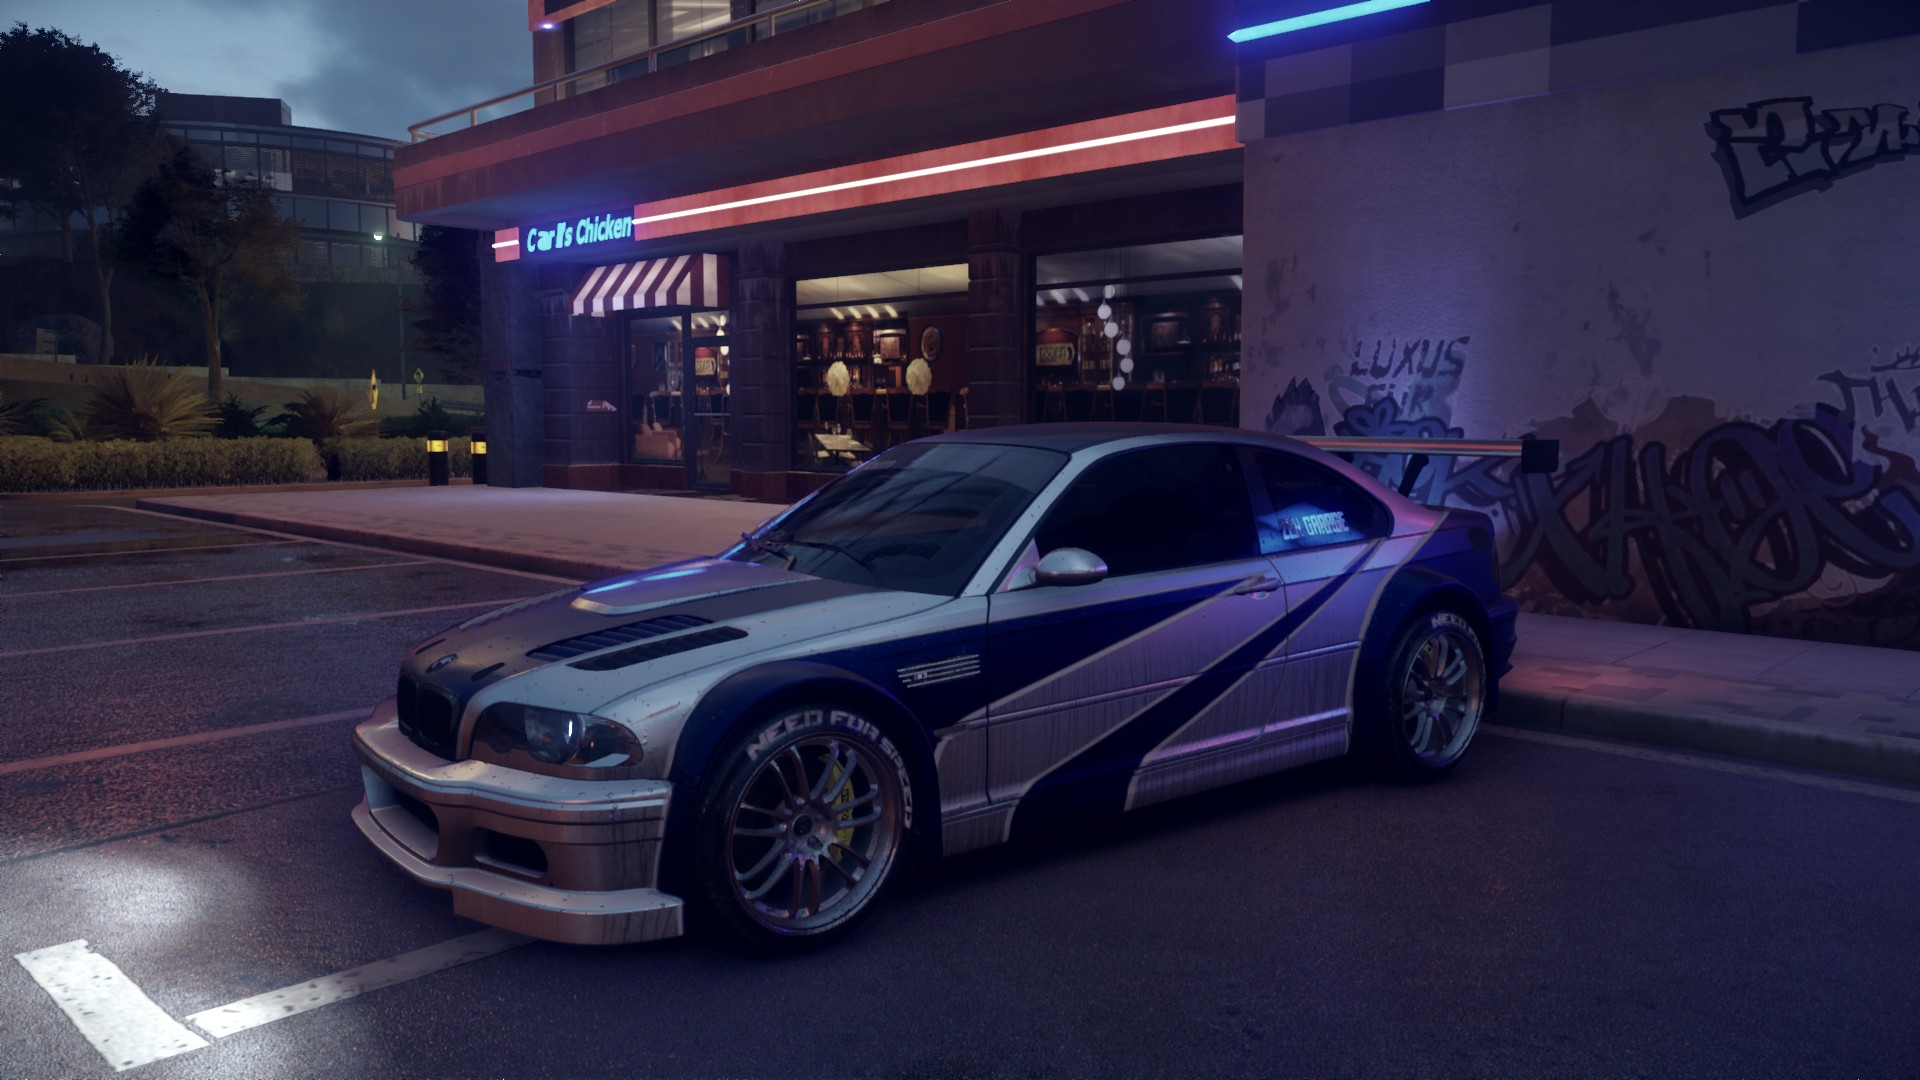 Car Pictures Wallpaper Net Speed Bmw M3 Gtr E46 Hero By Geonfsmw Need For Speed 2015